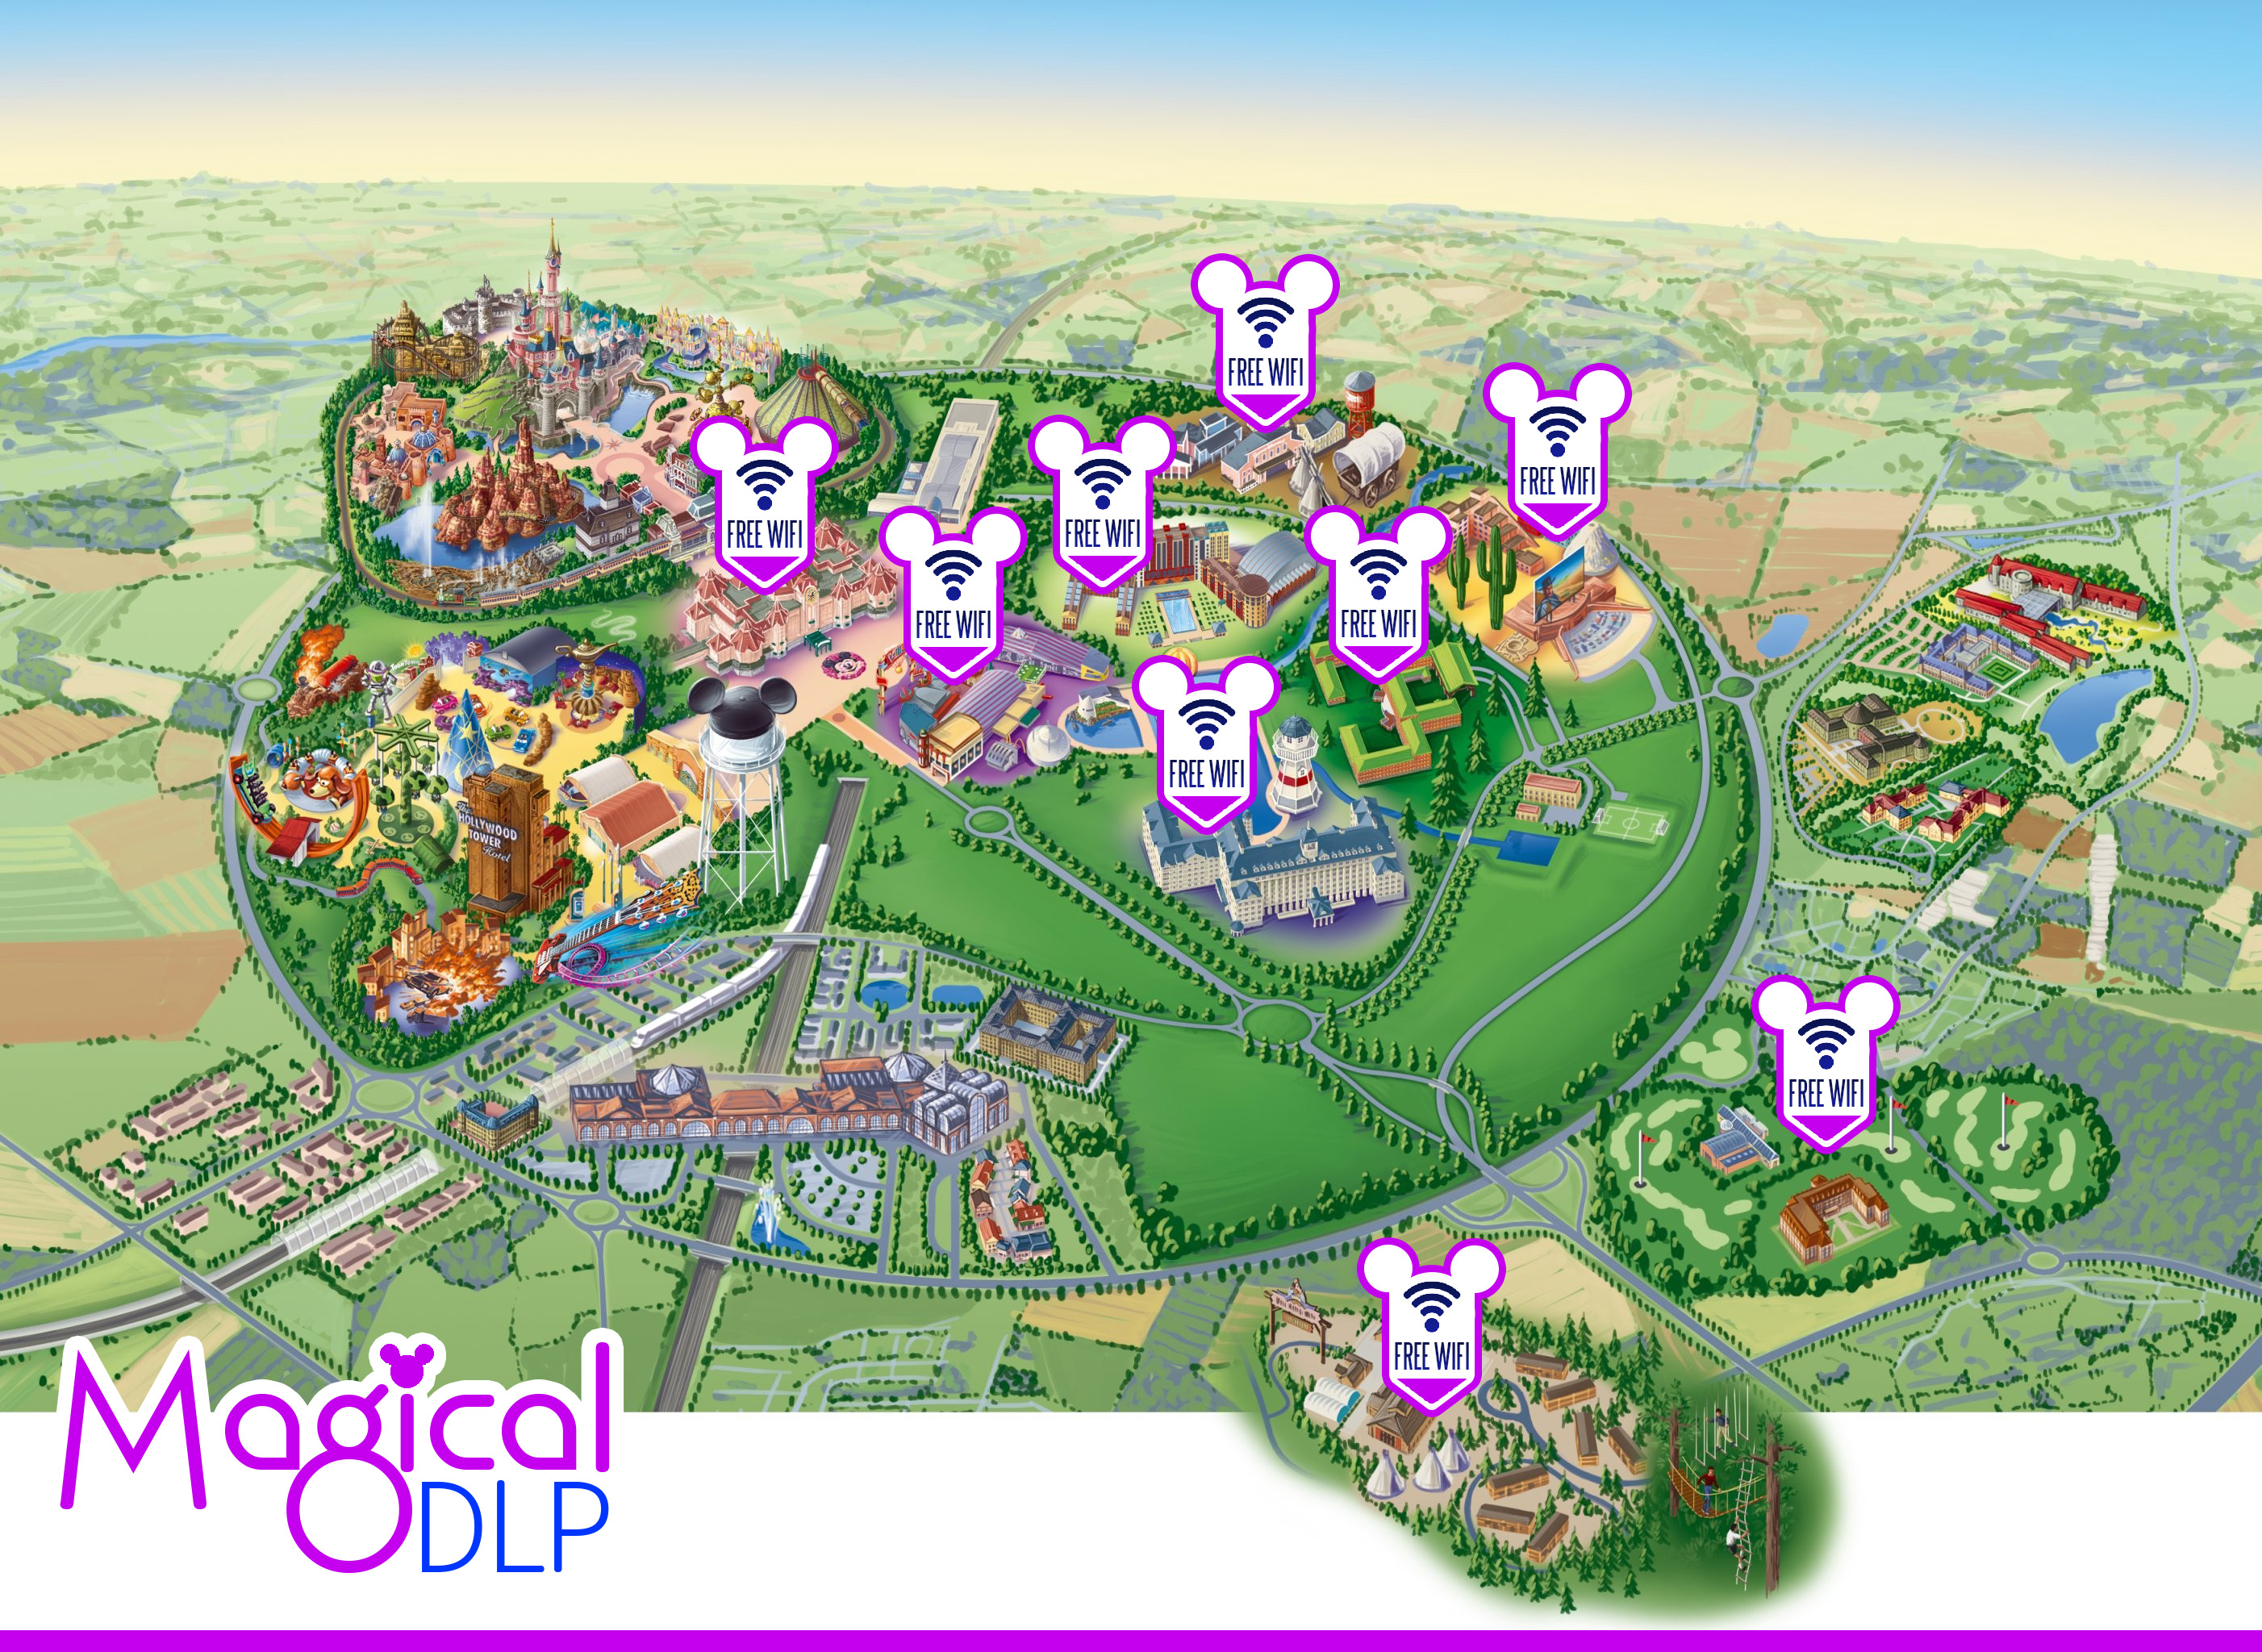 Free Wifi At Disneyland Paris Where Can You Find It